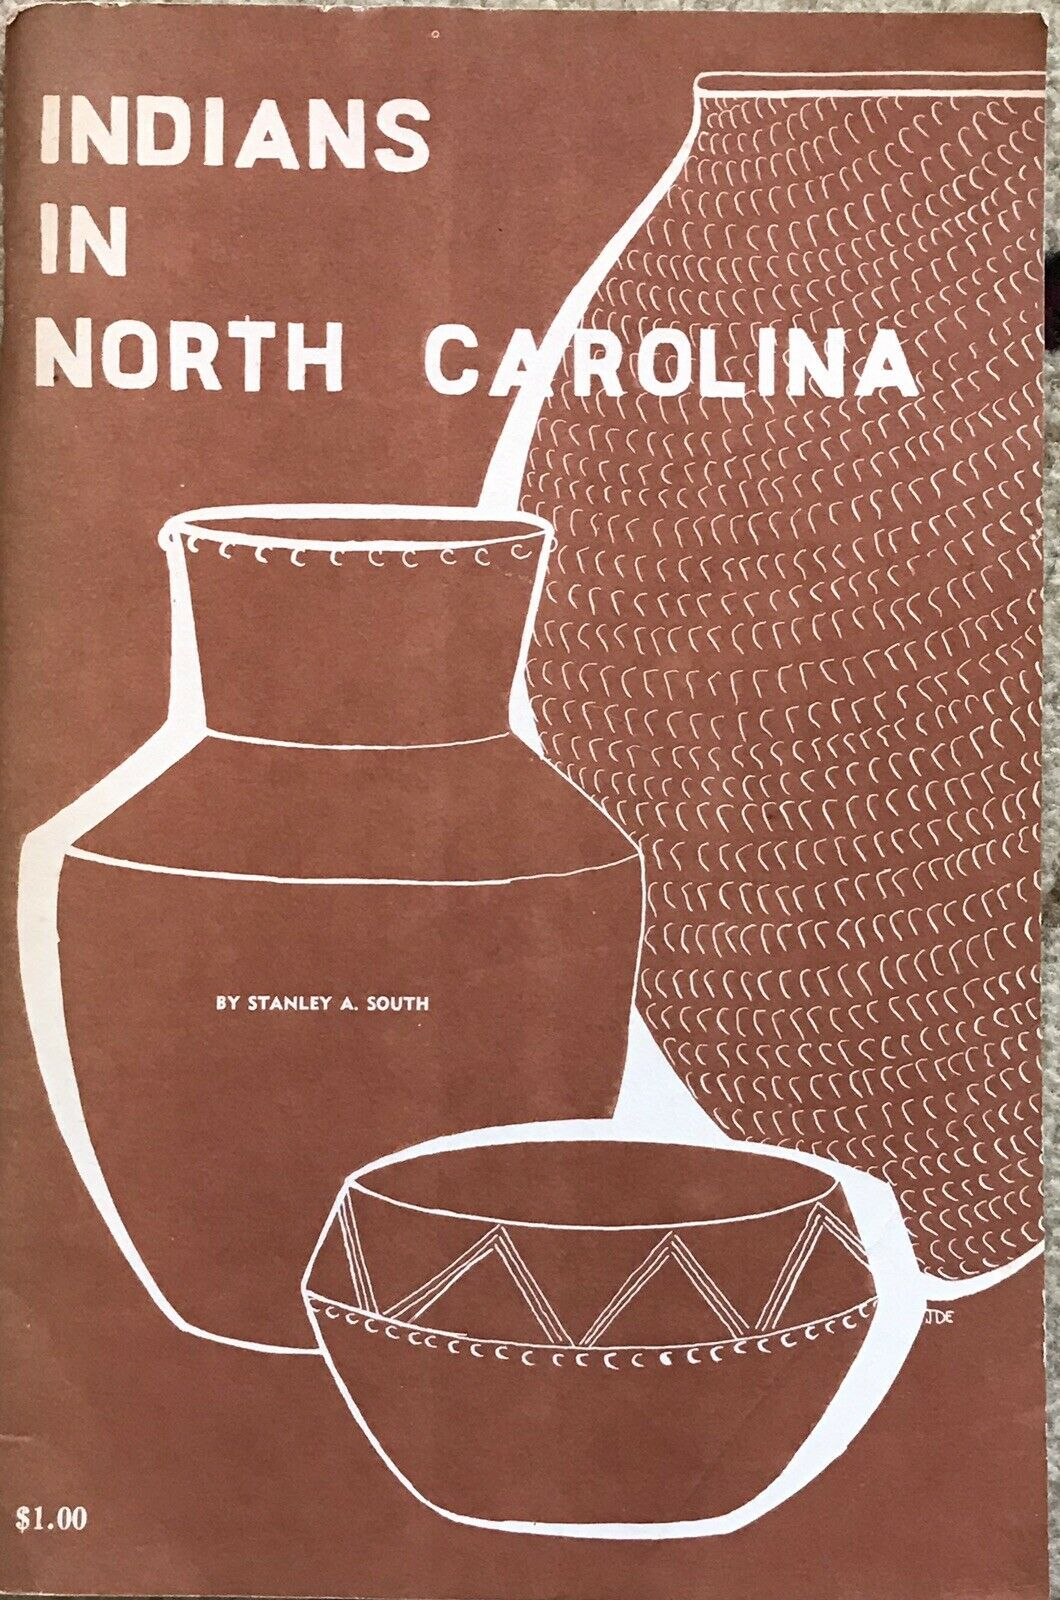 INDIANS IN NORTH CAROLINA ALGONQUINS TUSCARORA CHEROKEE SIOUX PHOTOS CULTURE |